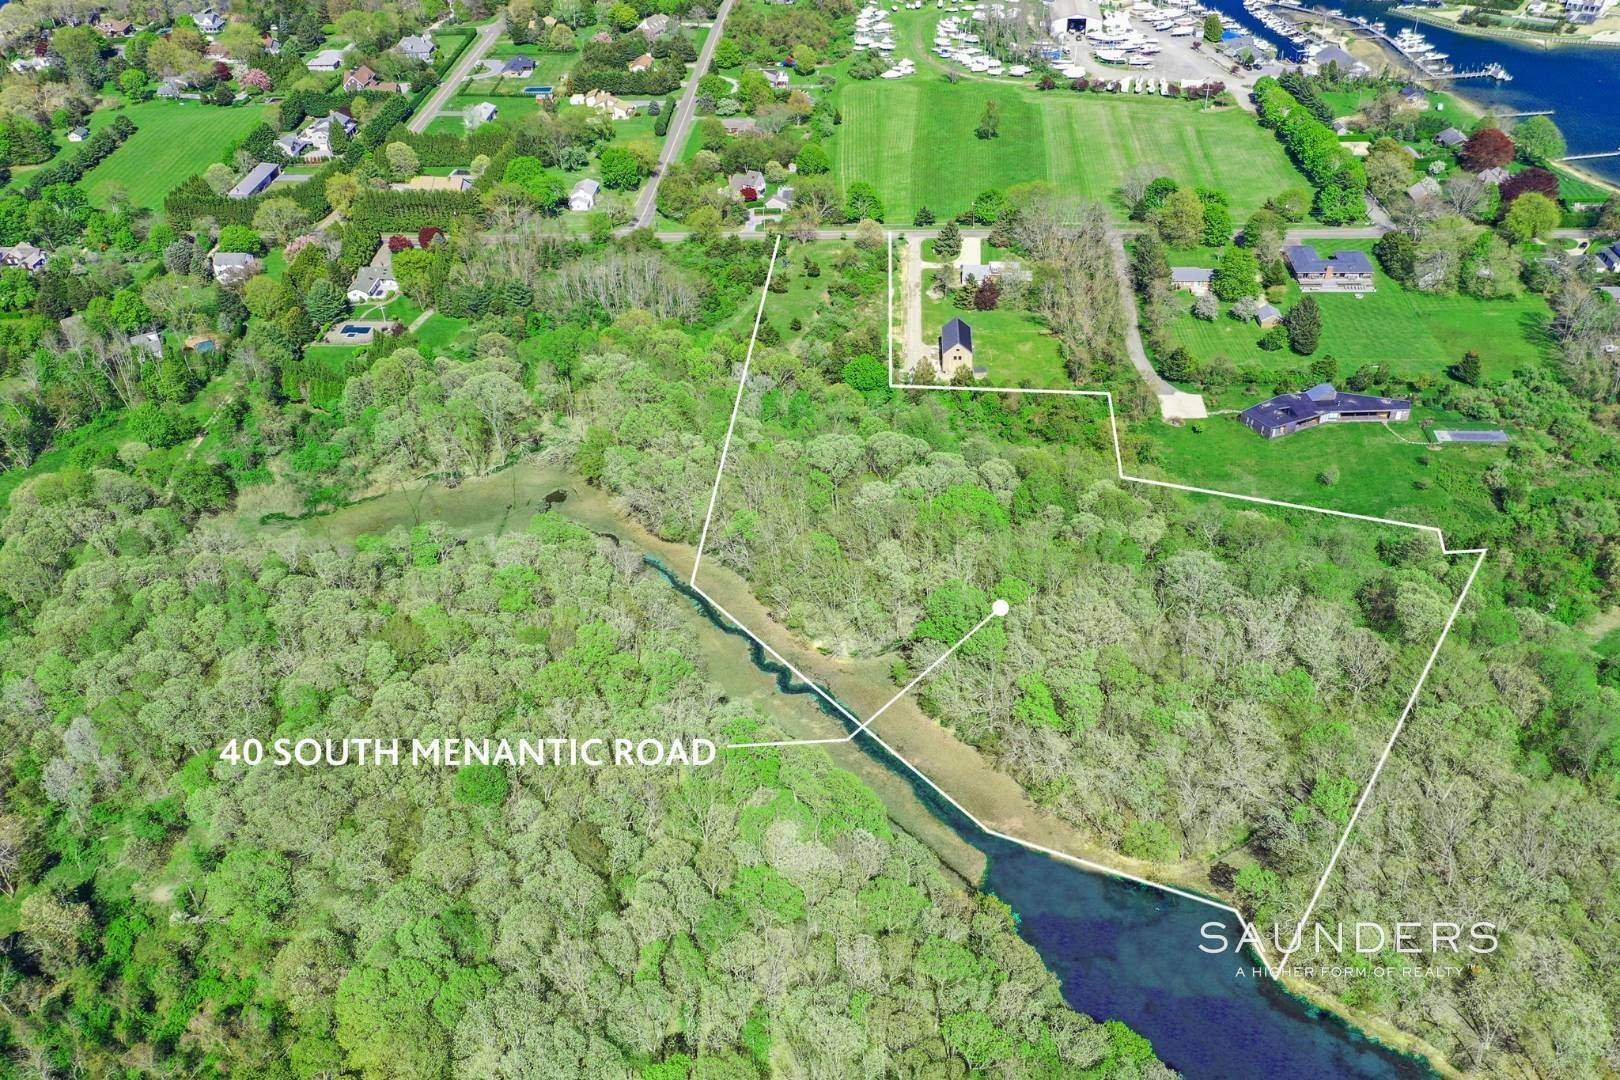 Land for Sale at Shelter Island Waterfront With Unadulterated Beauty 40 South Menantic Road, Shelter Island Heights, Shelter Island, NY 11964